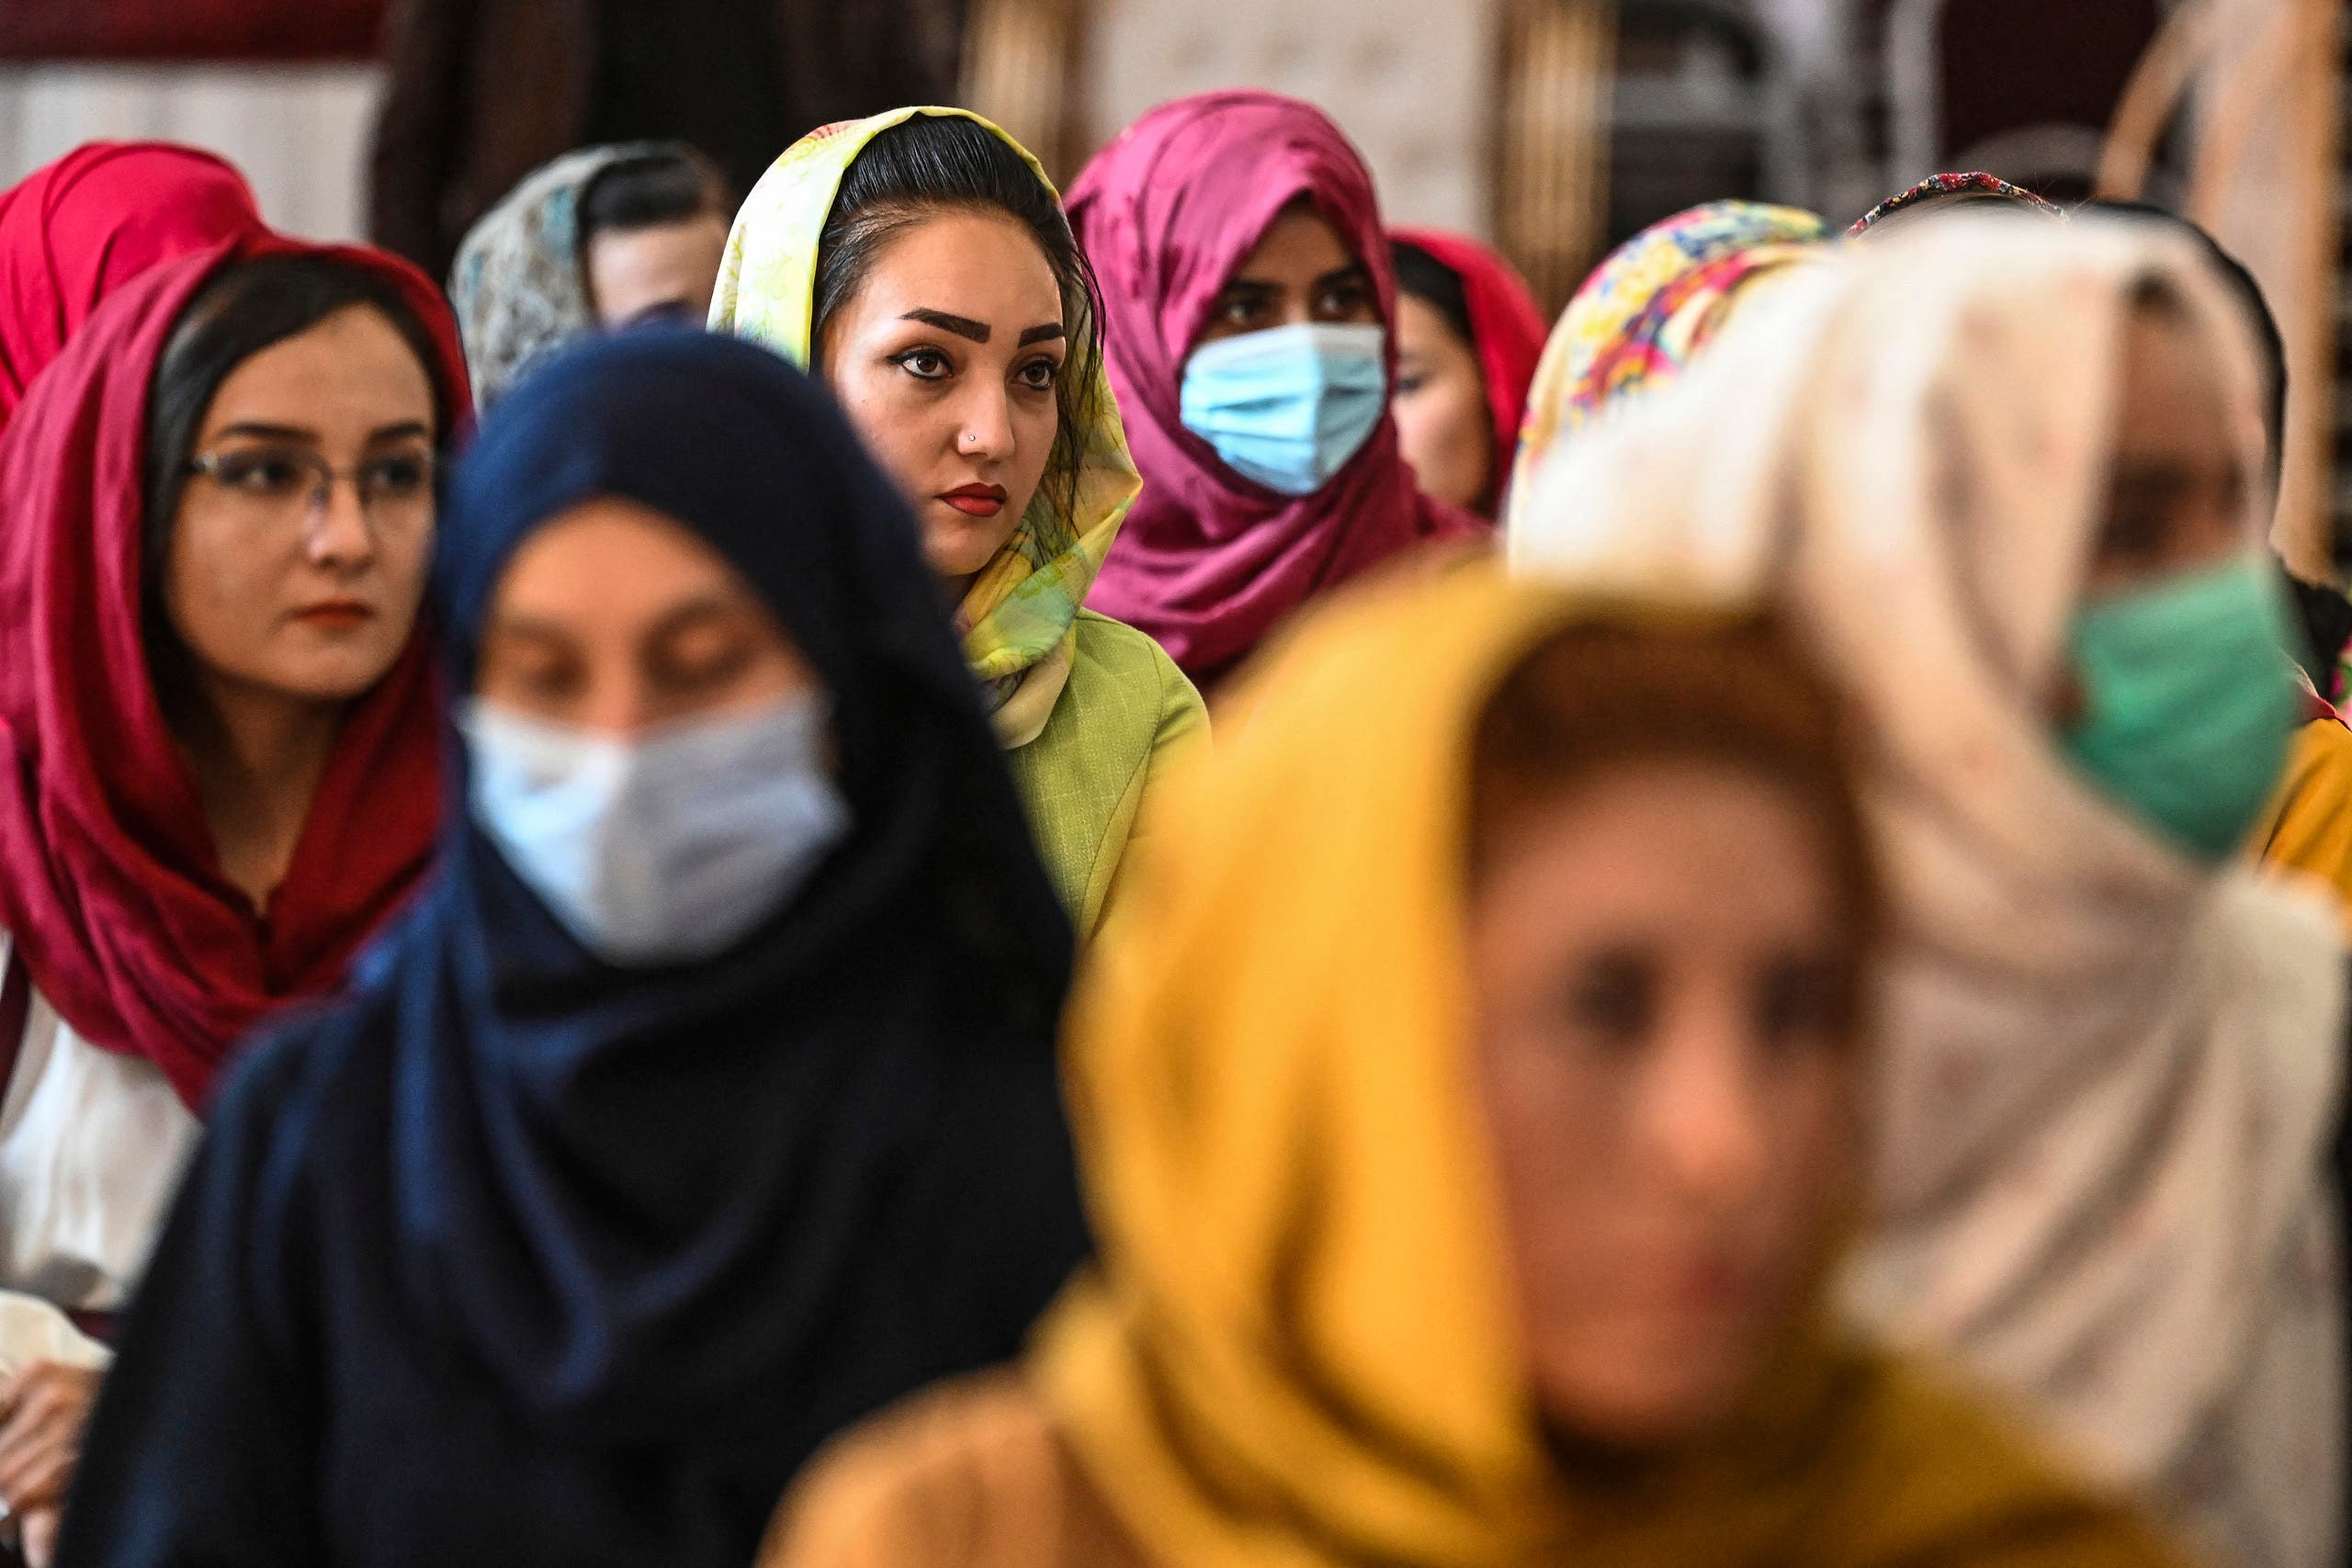 Afghan women take part in a gathering at a hall in Kabul on August 2, 2021 against the claimed human rights violations on women by the Taliban regime in Afghanistan. (Reuters)